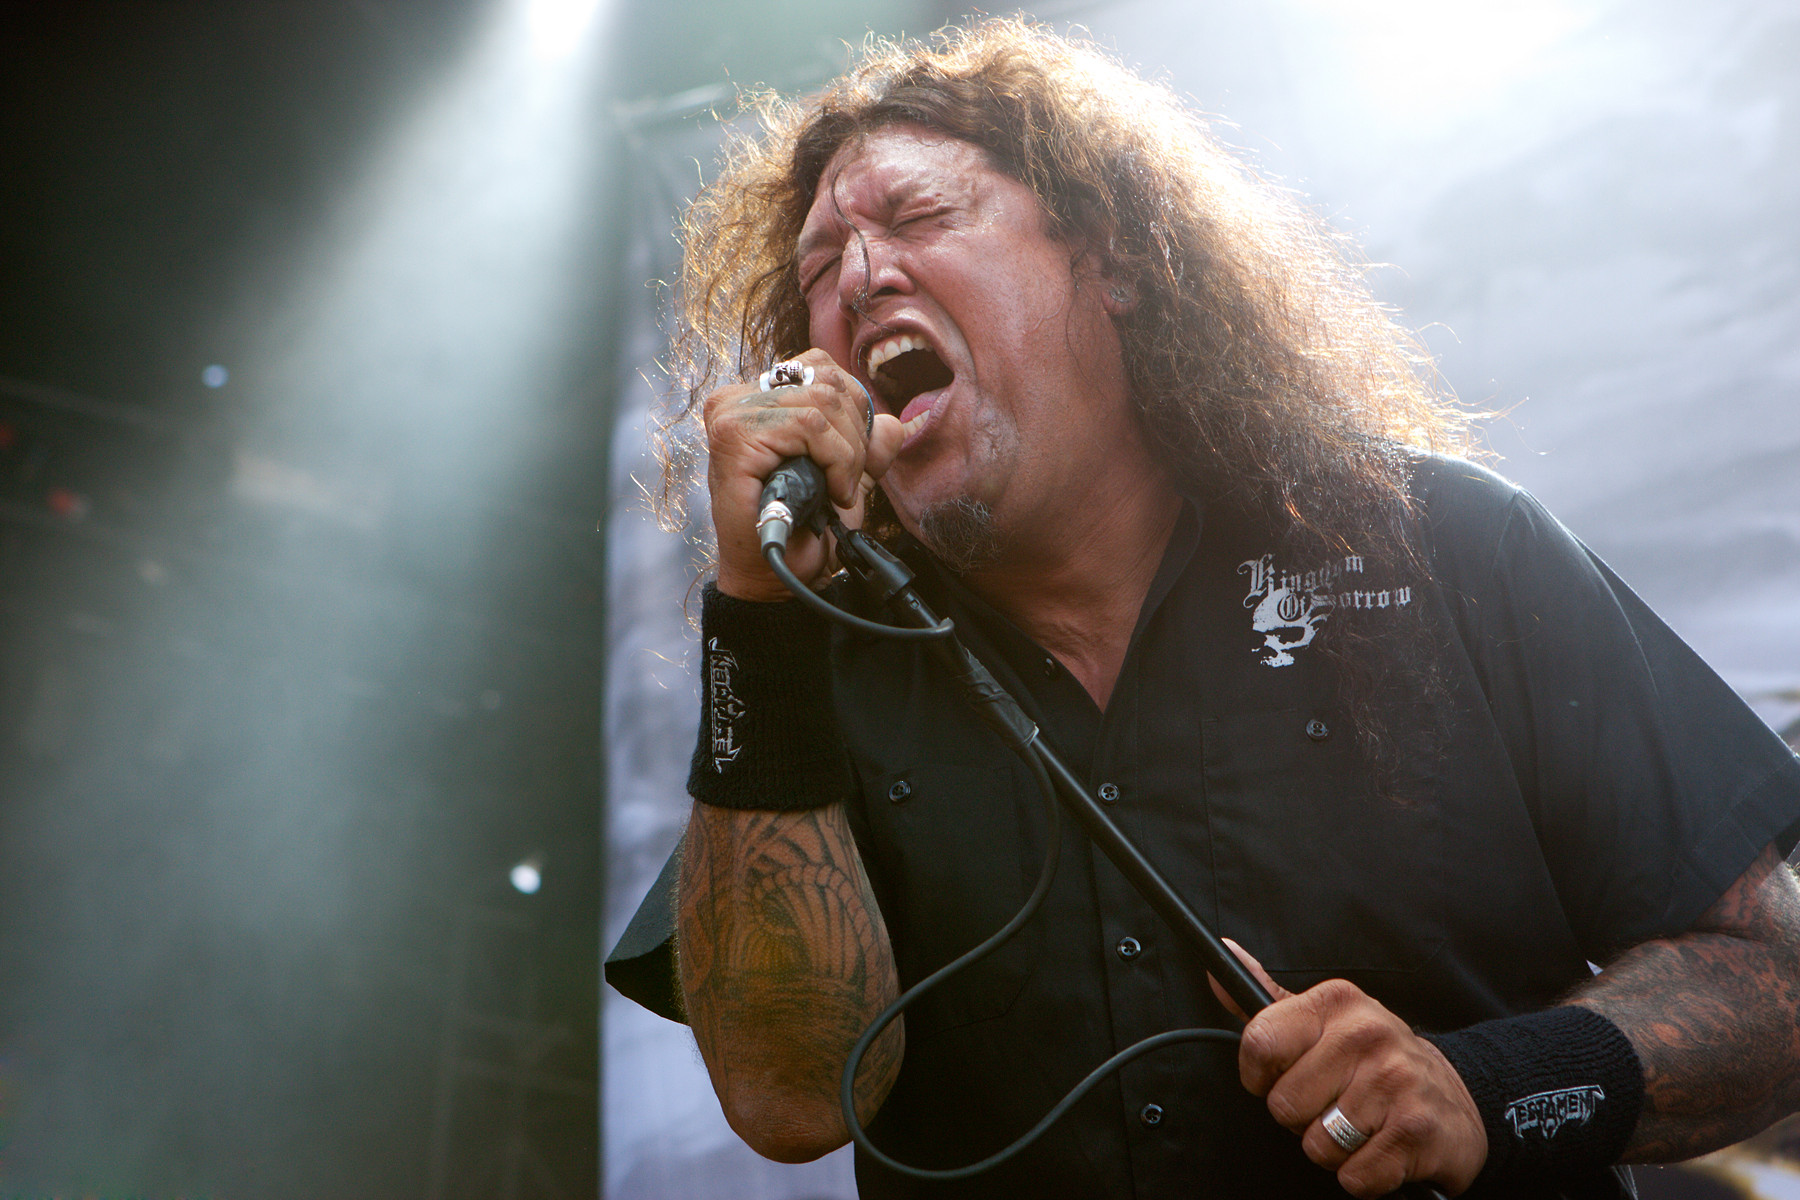 Testament @ Heavy T.O. 2011